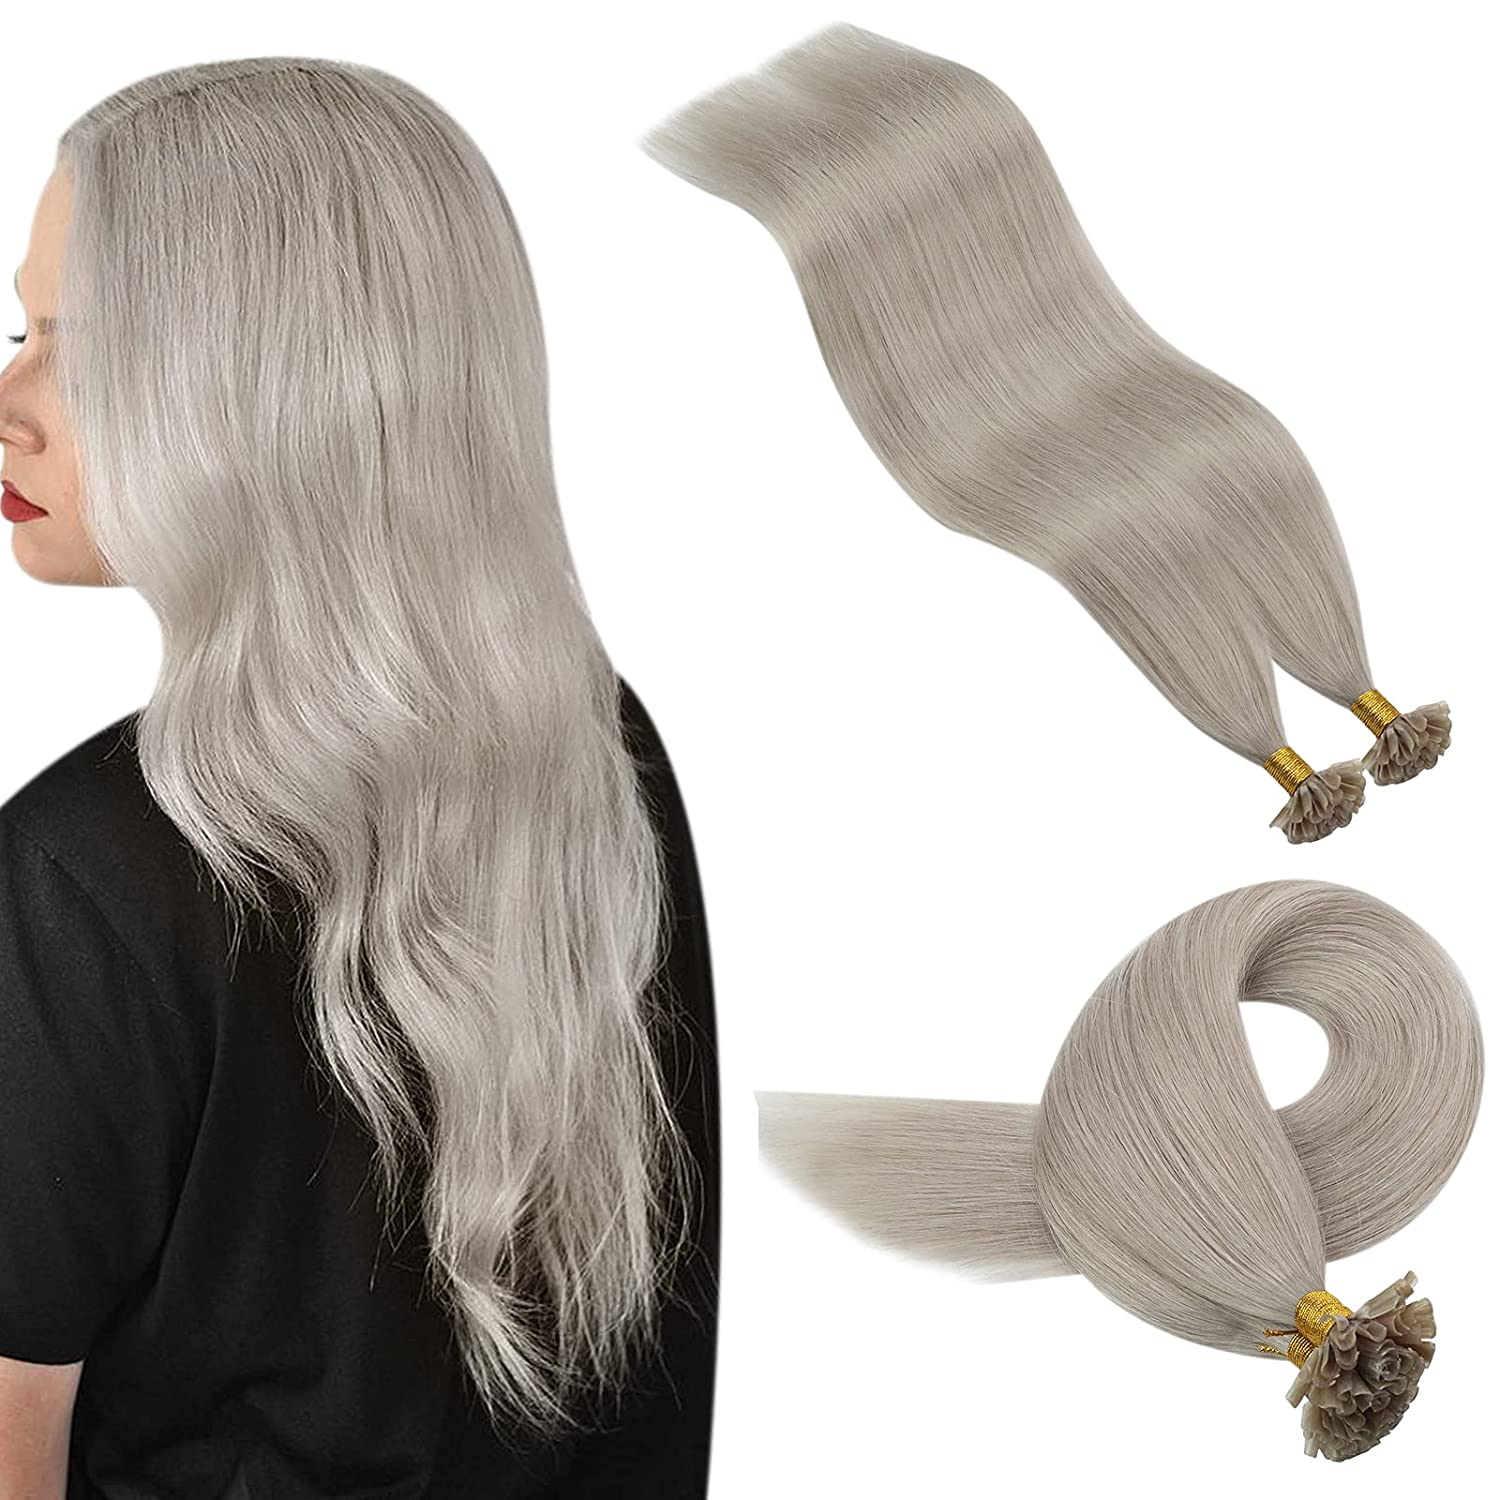 New sales YoungSee Gray U Tip Max 70% OFF Human Fusion Extensions Hair